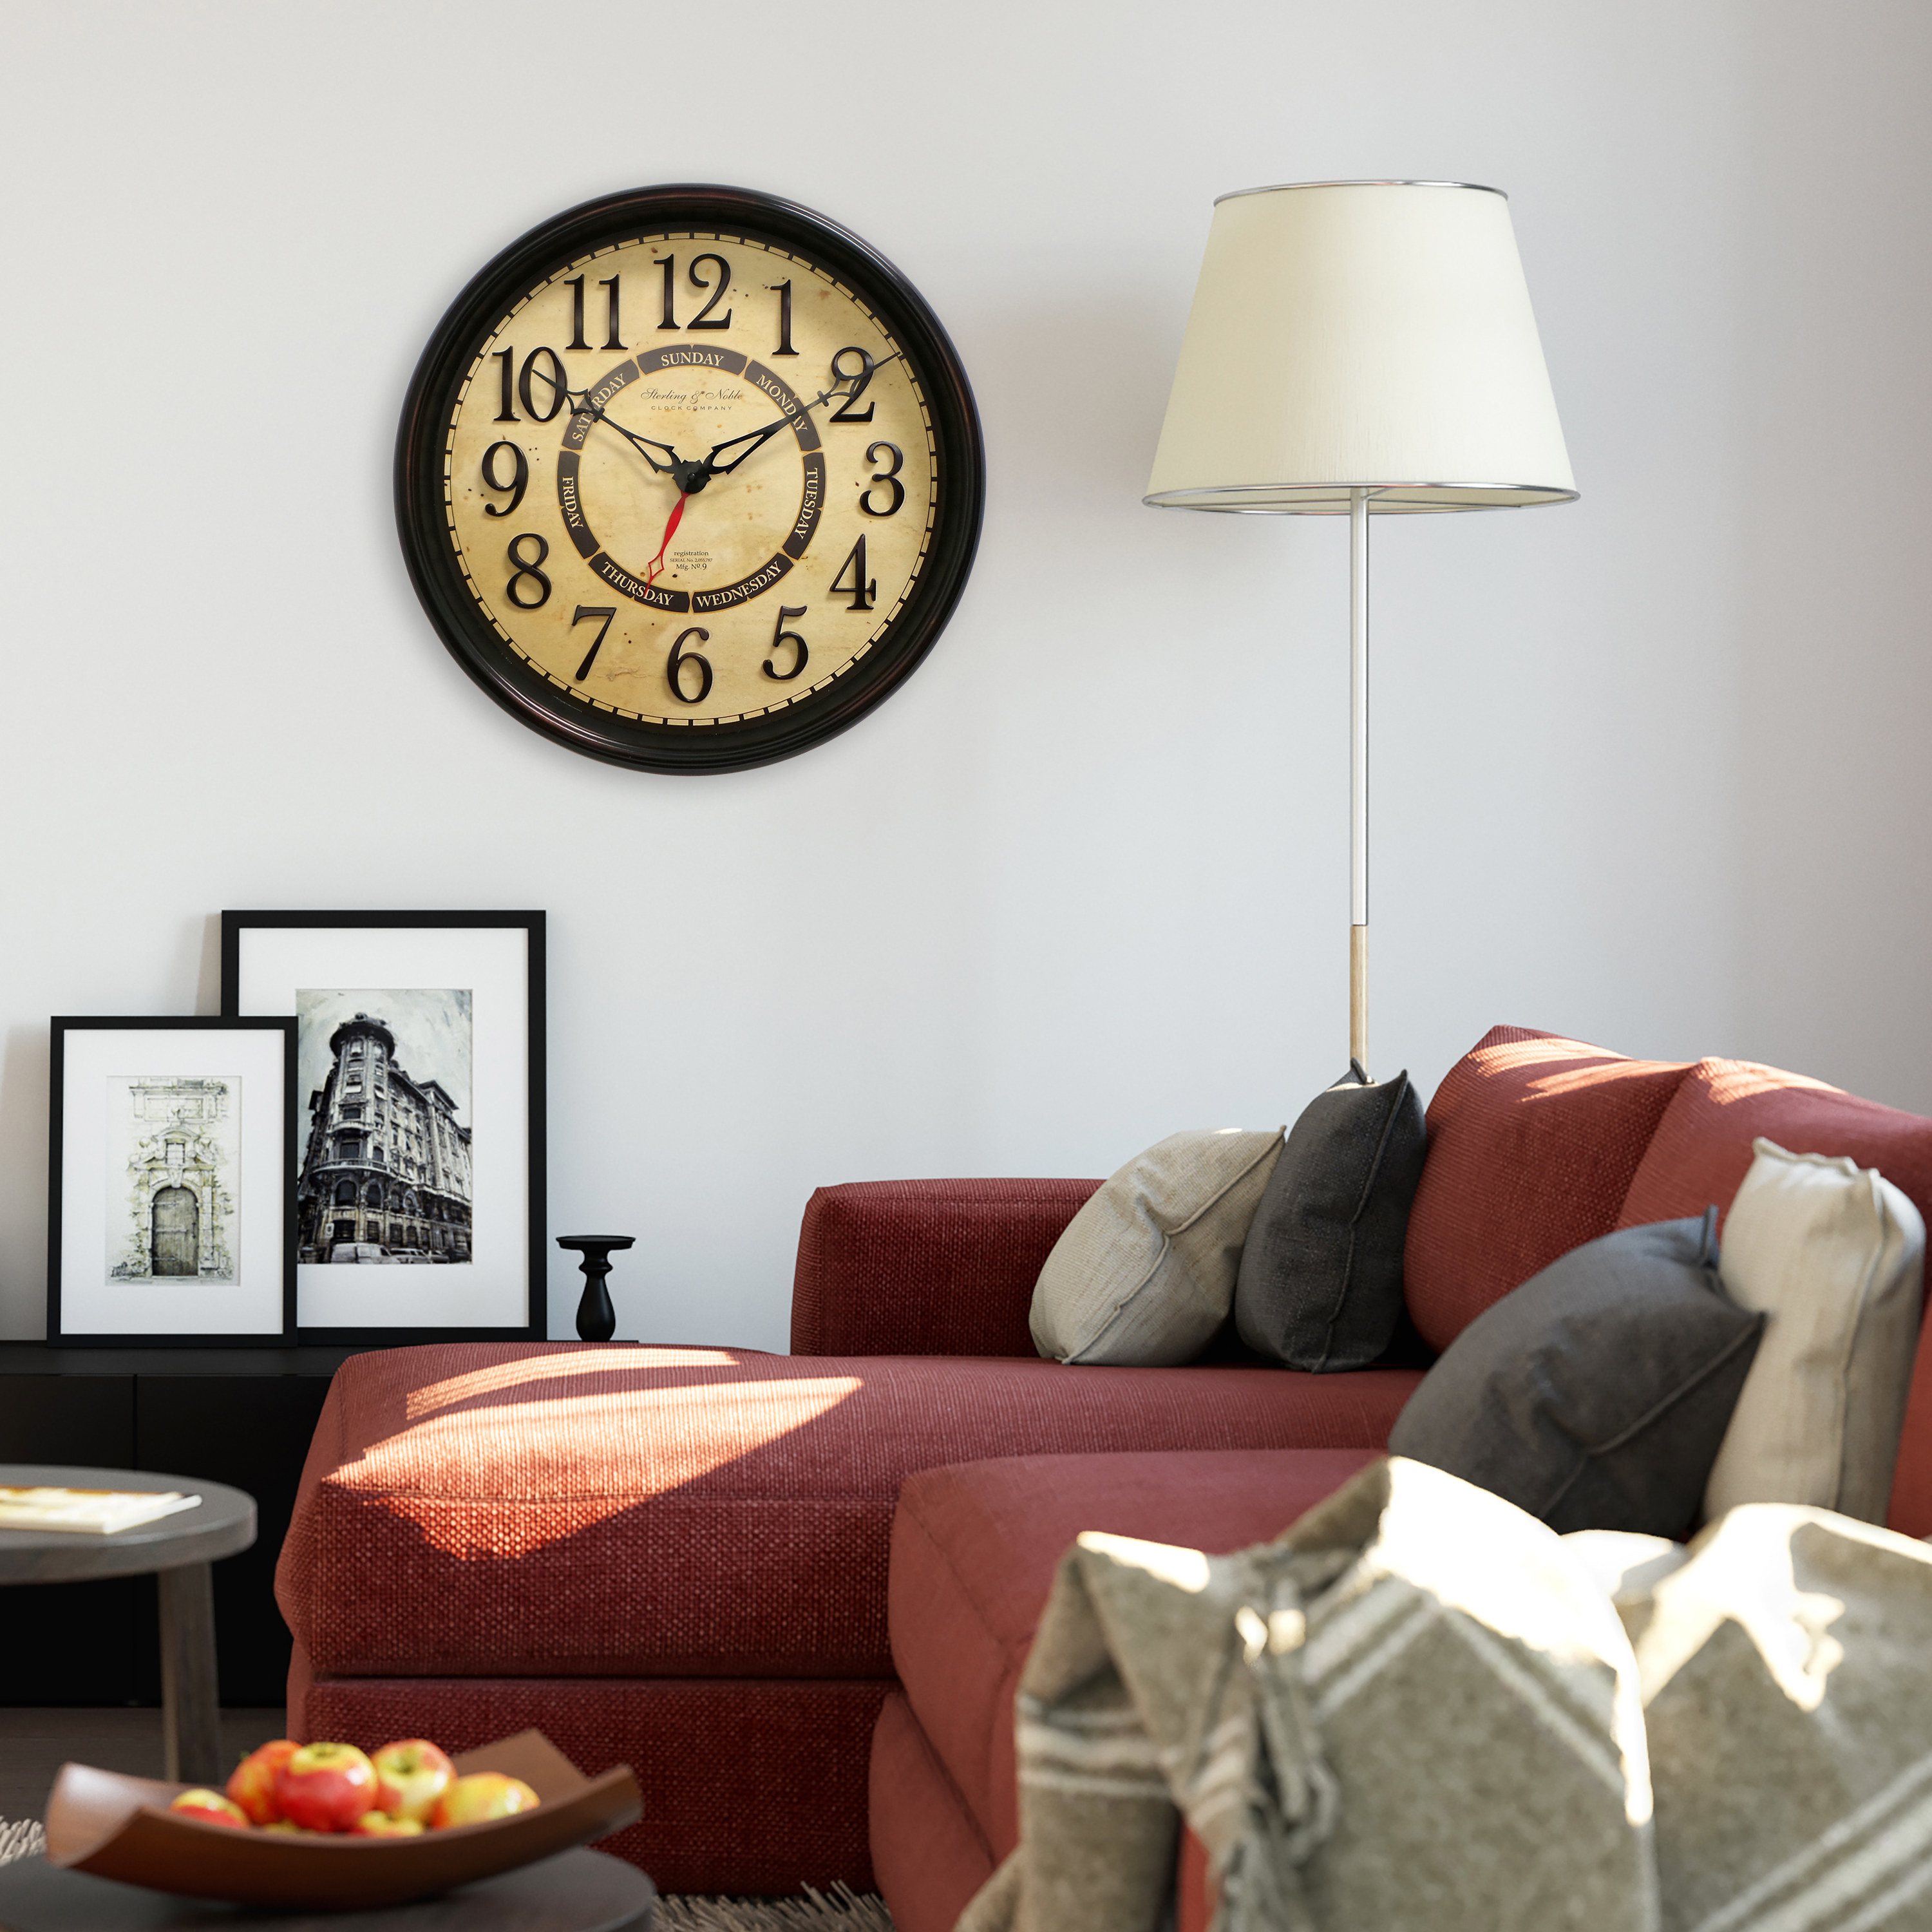 Decorative calendar clock